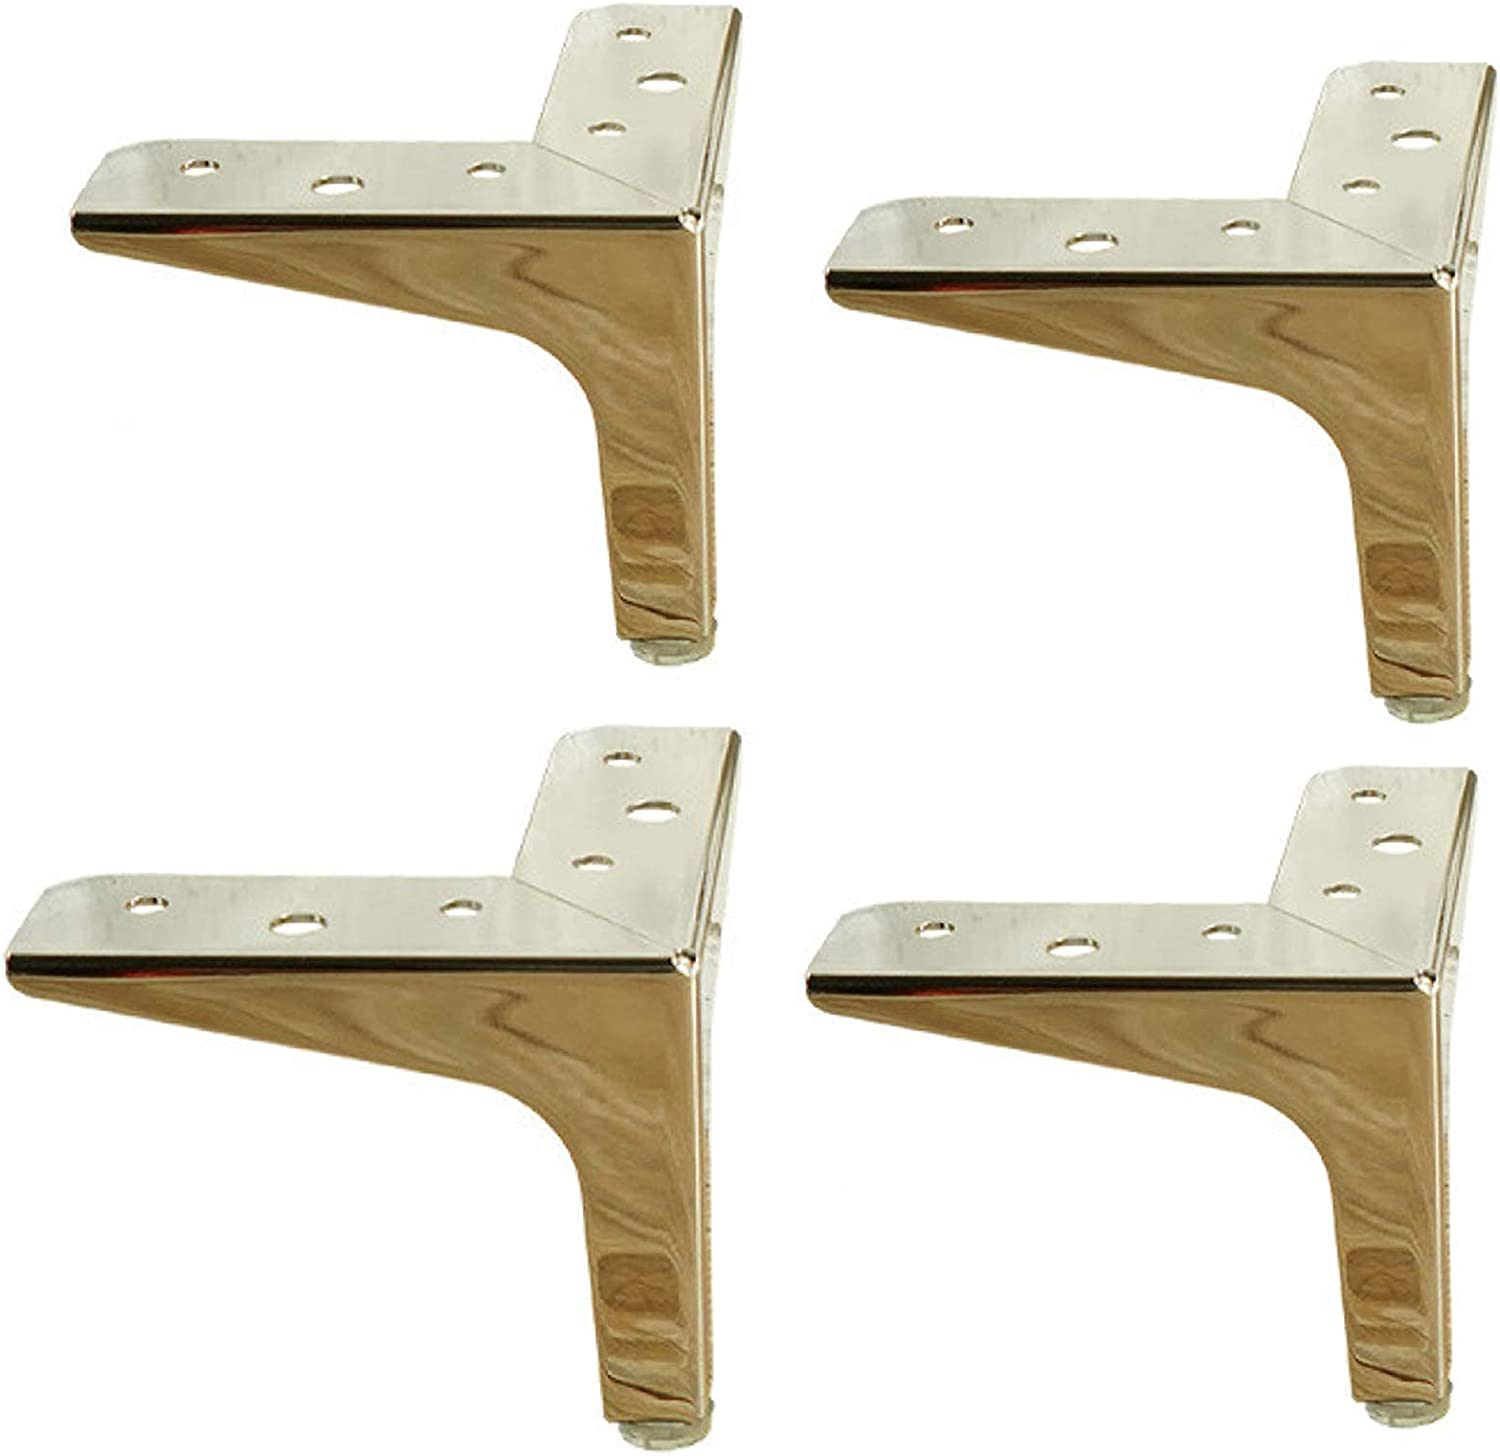 FBBSZSD Sofa Legs Metal Furniture DIY Table Legs Cabinet Feet Metal Furniture Feet for Coffee Table, Dining Table, Designer Desk, Bedside Table, Chairs, Cabinet and Sofa Set of 4,Gold,13cm